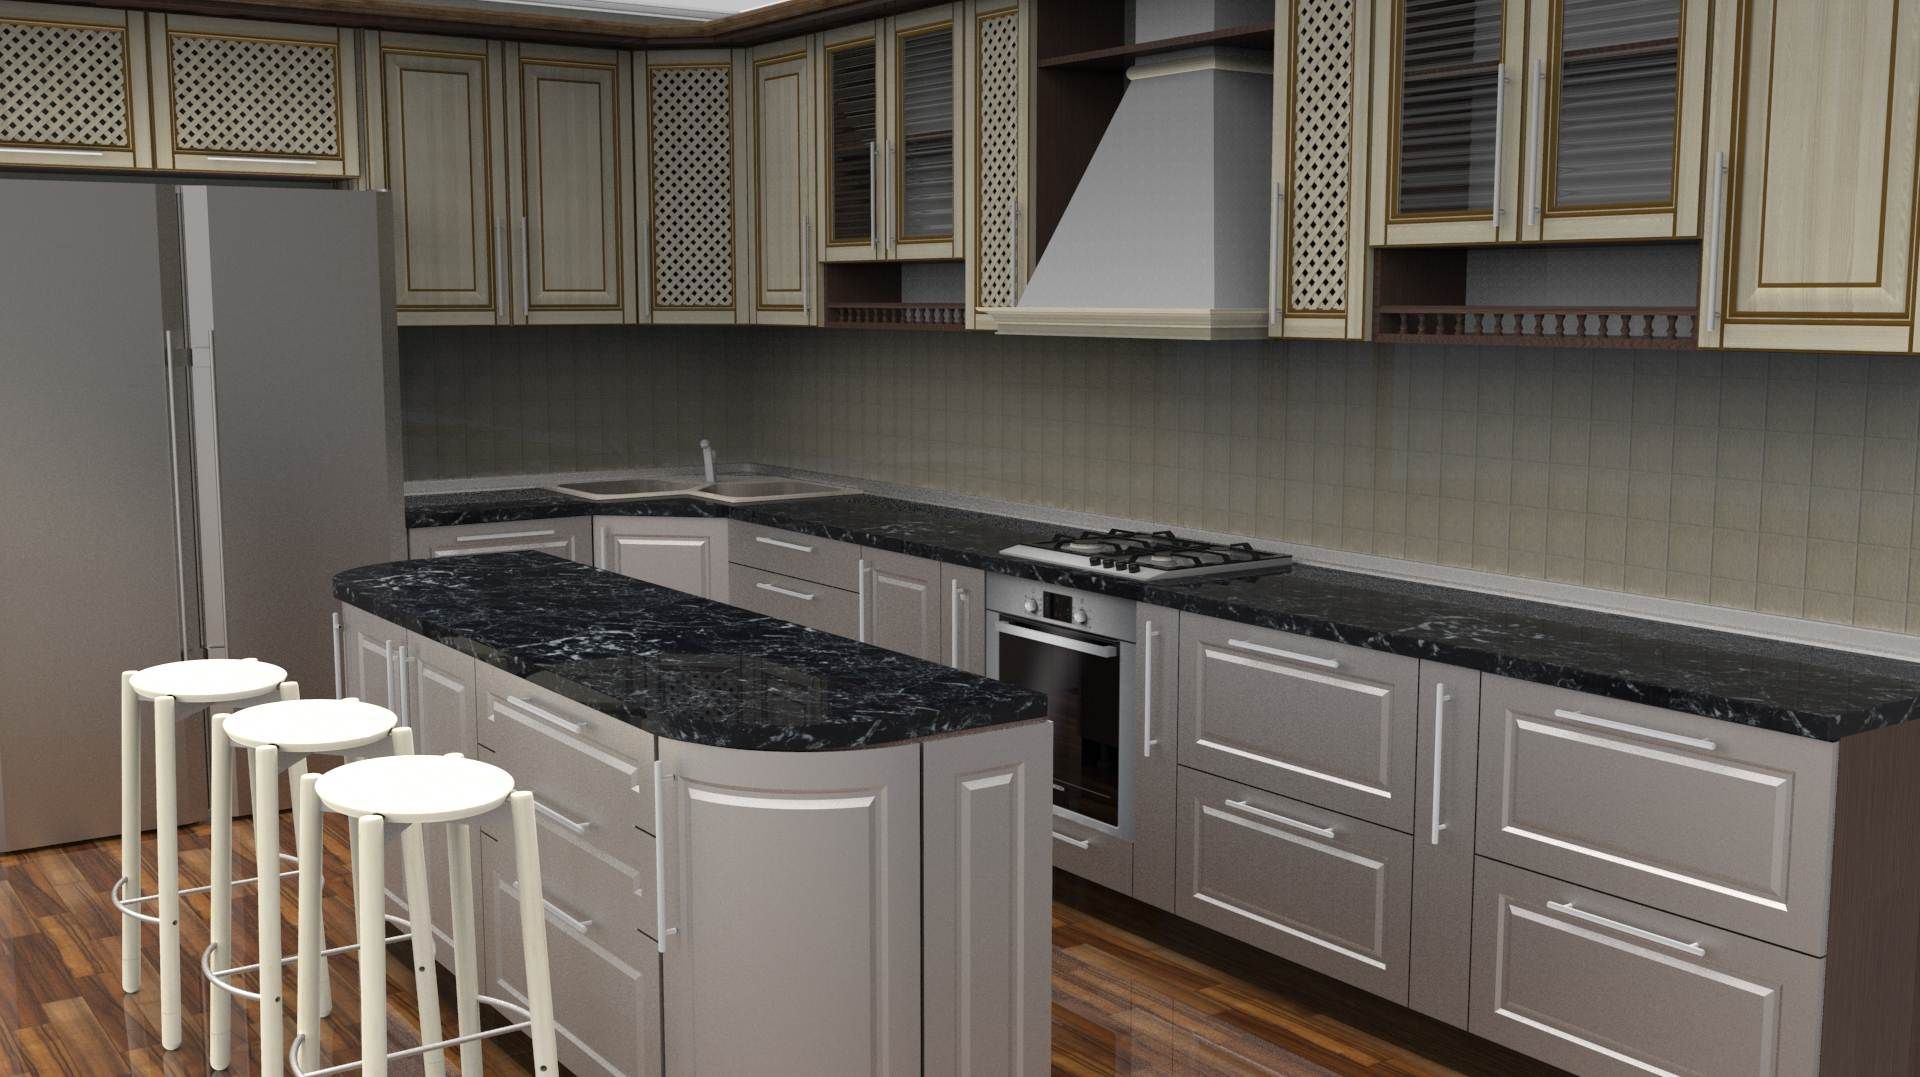 Top Rated Kitchen Design App 24 Best Online Kitchen Design Software Options In 2019 Free Paid